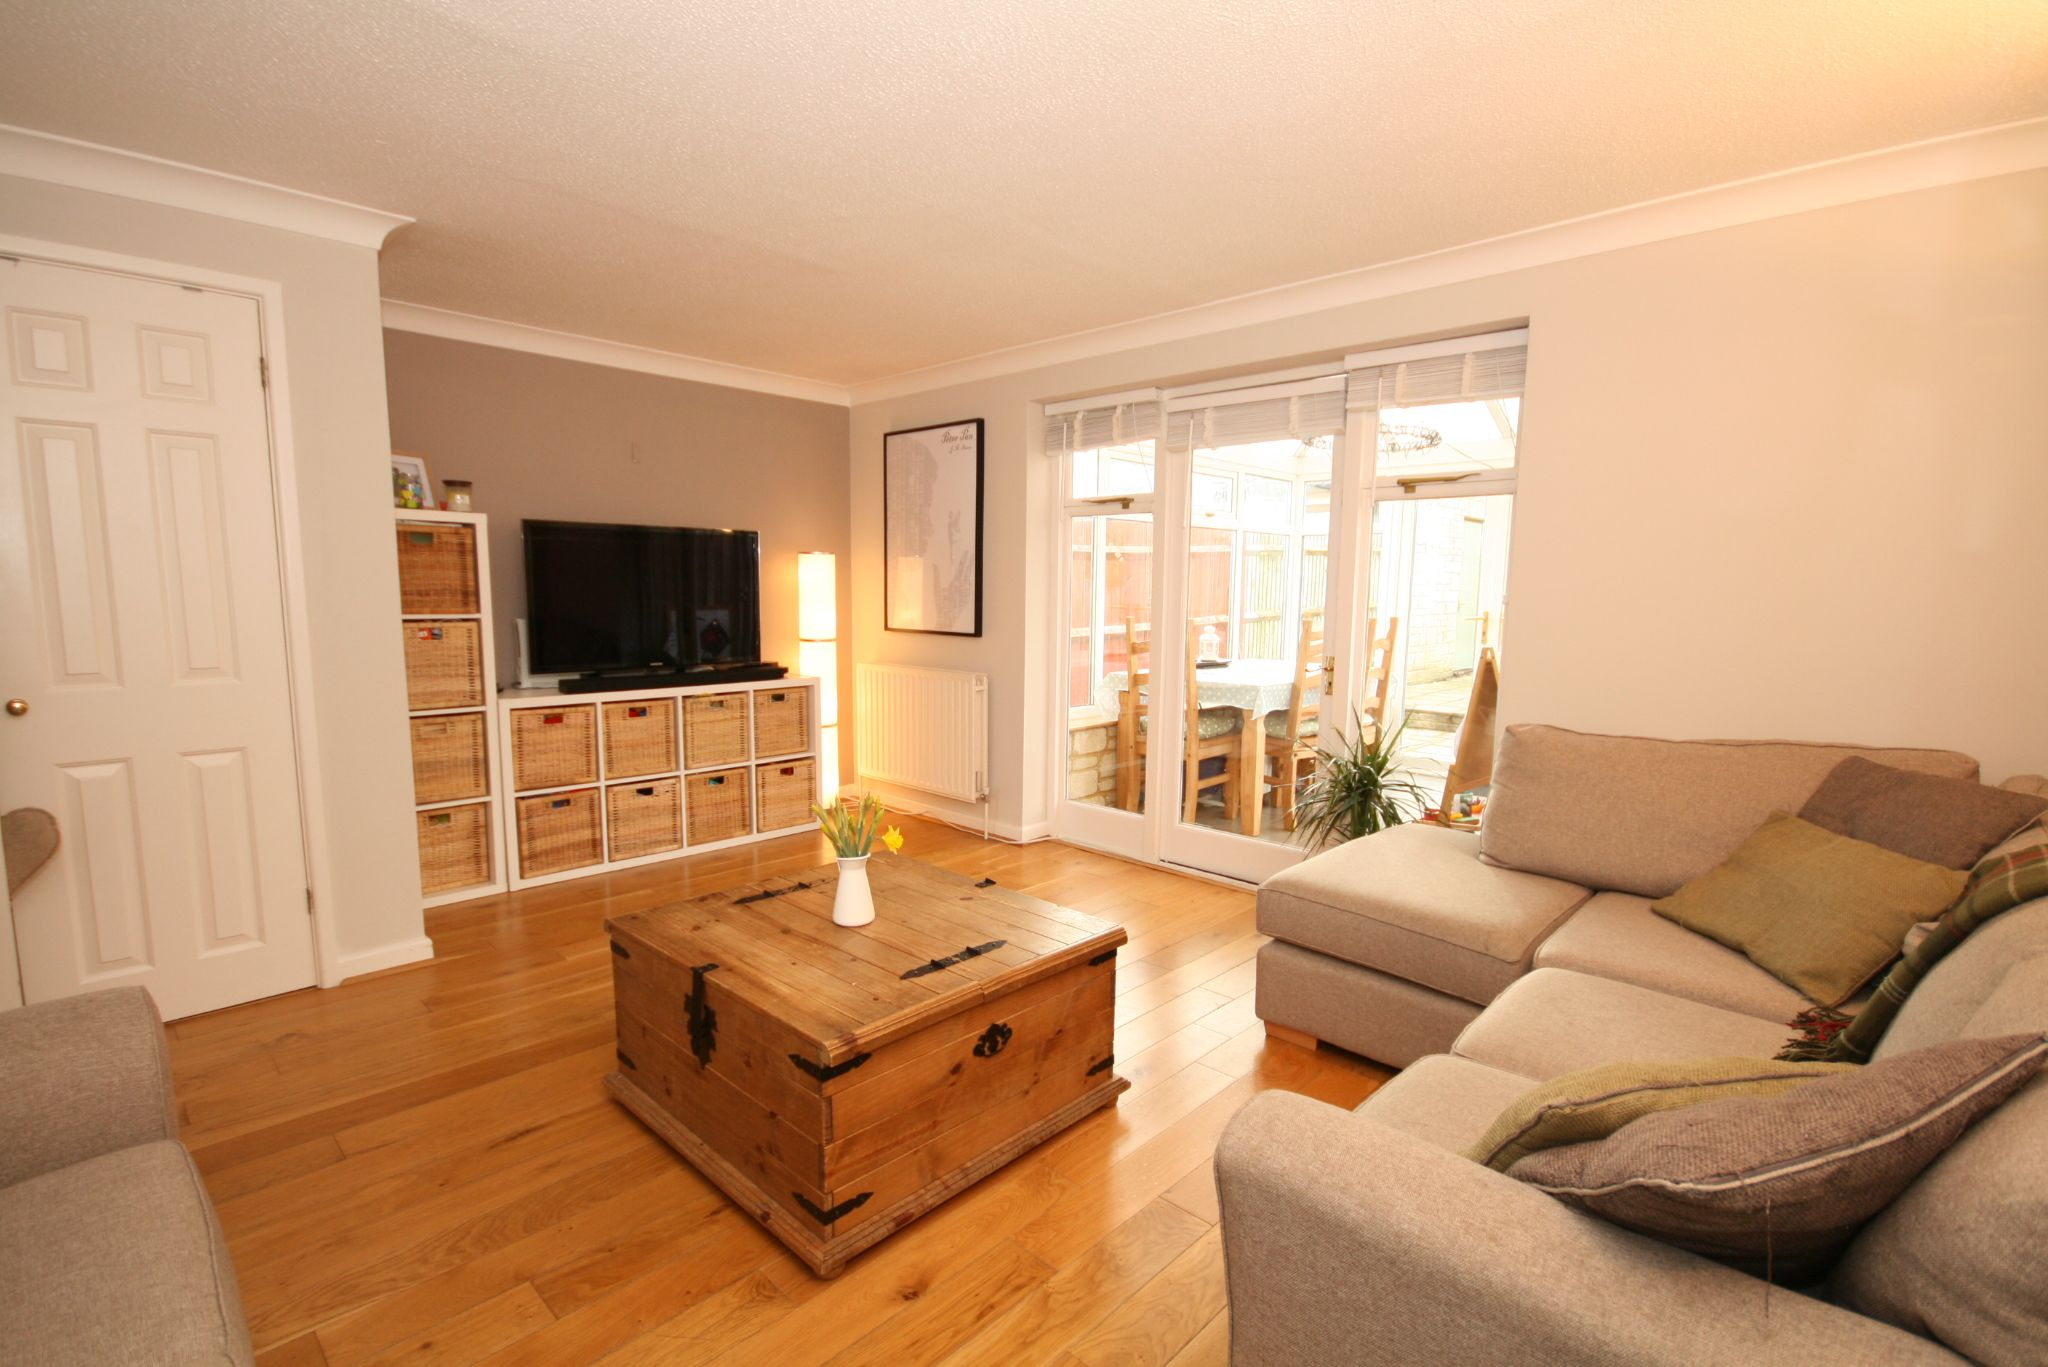 3 Bedroom End Terraced House For Sale - Sitting Room